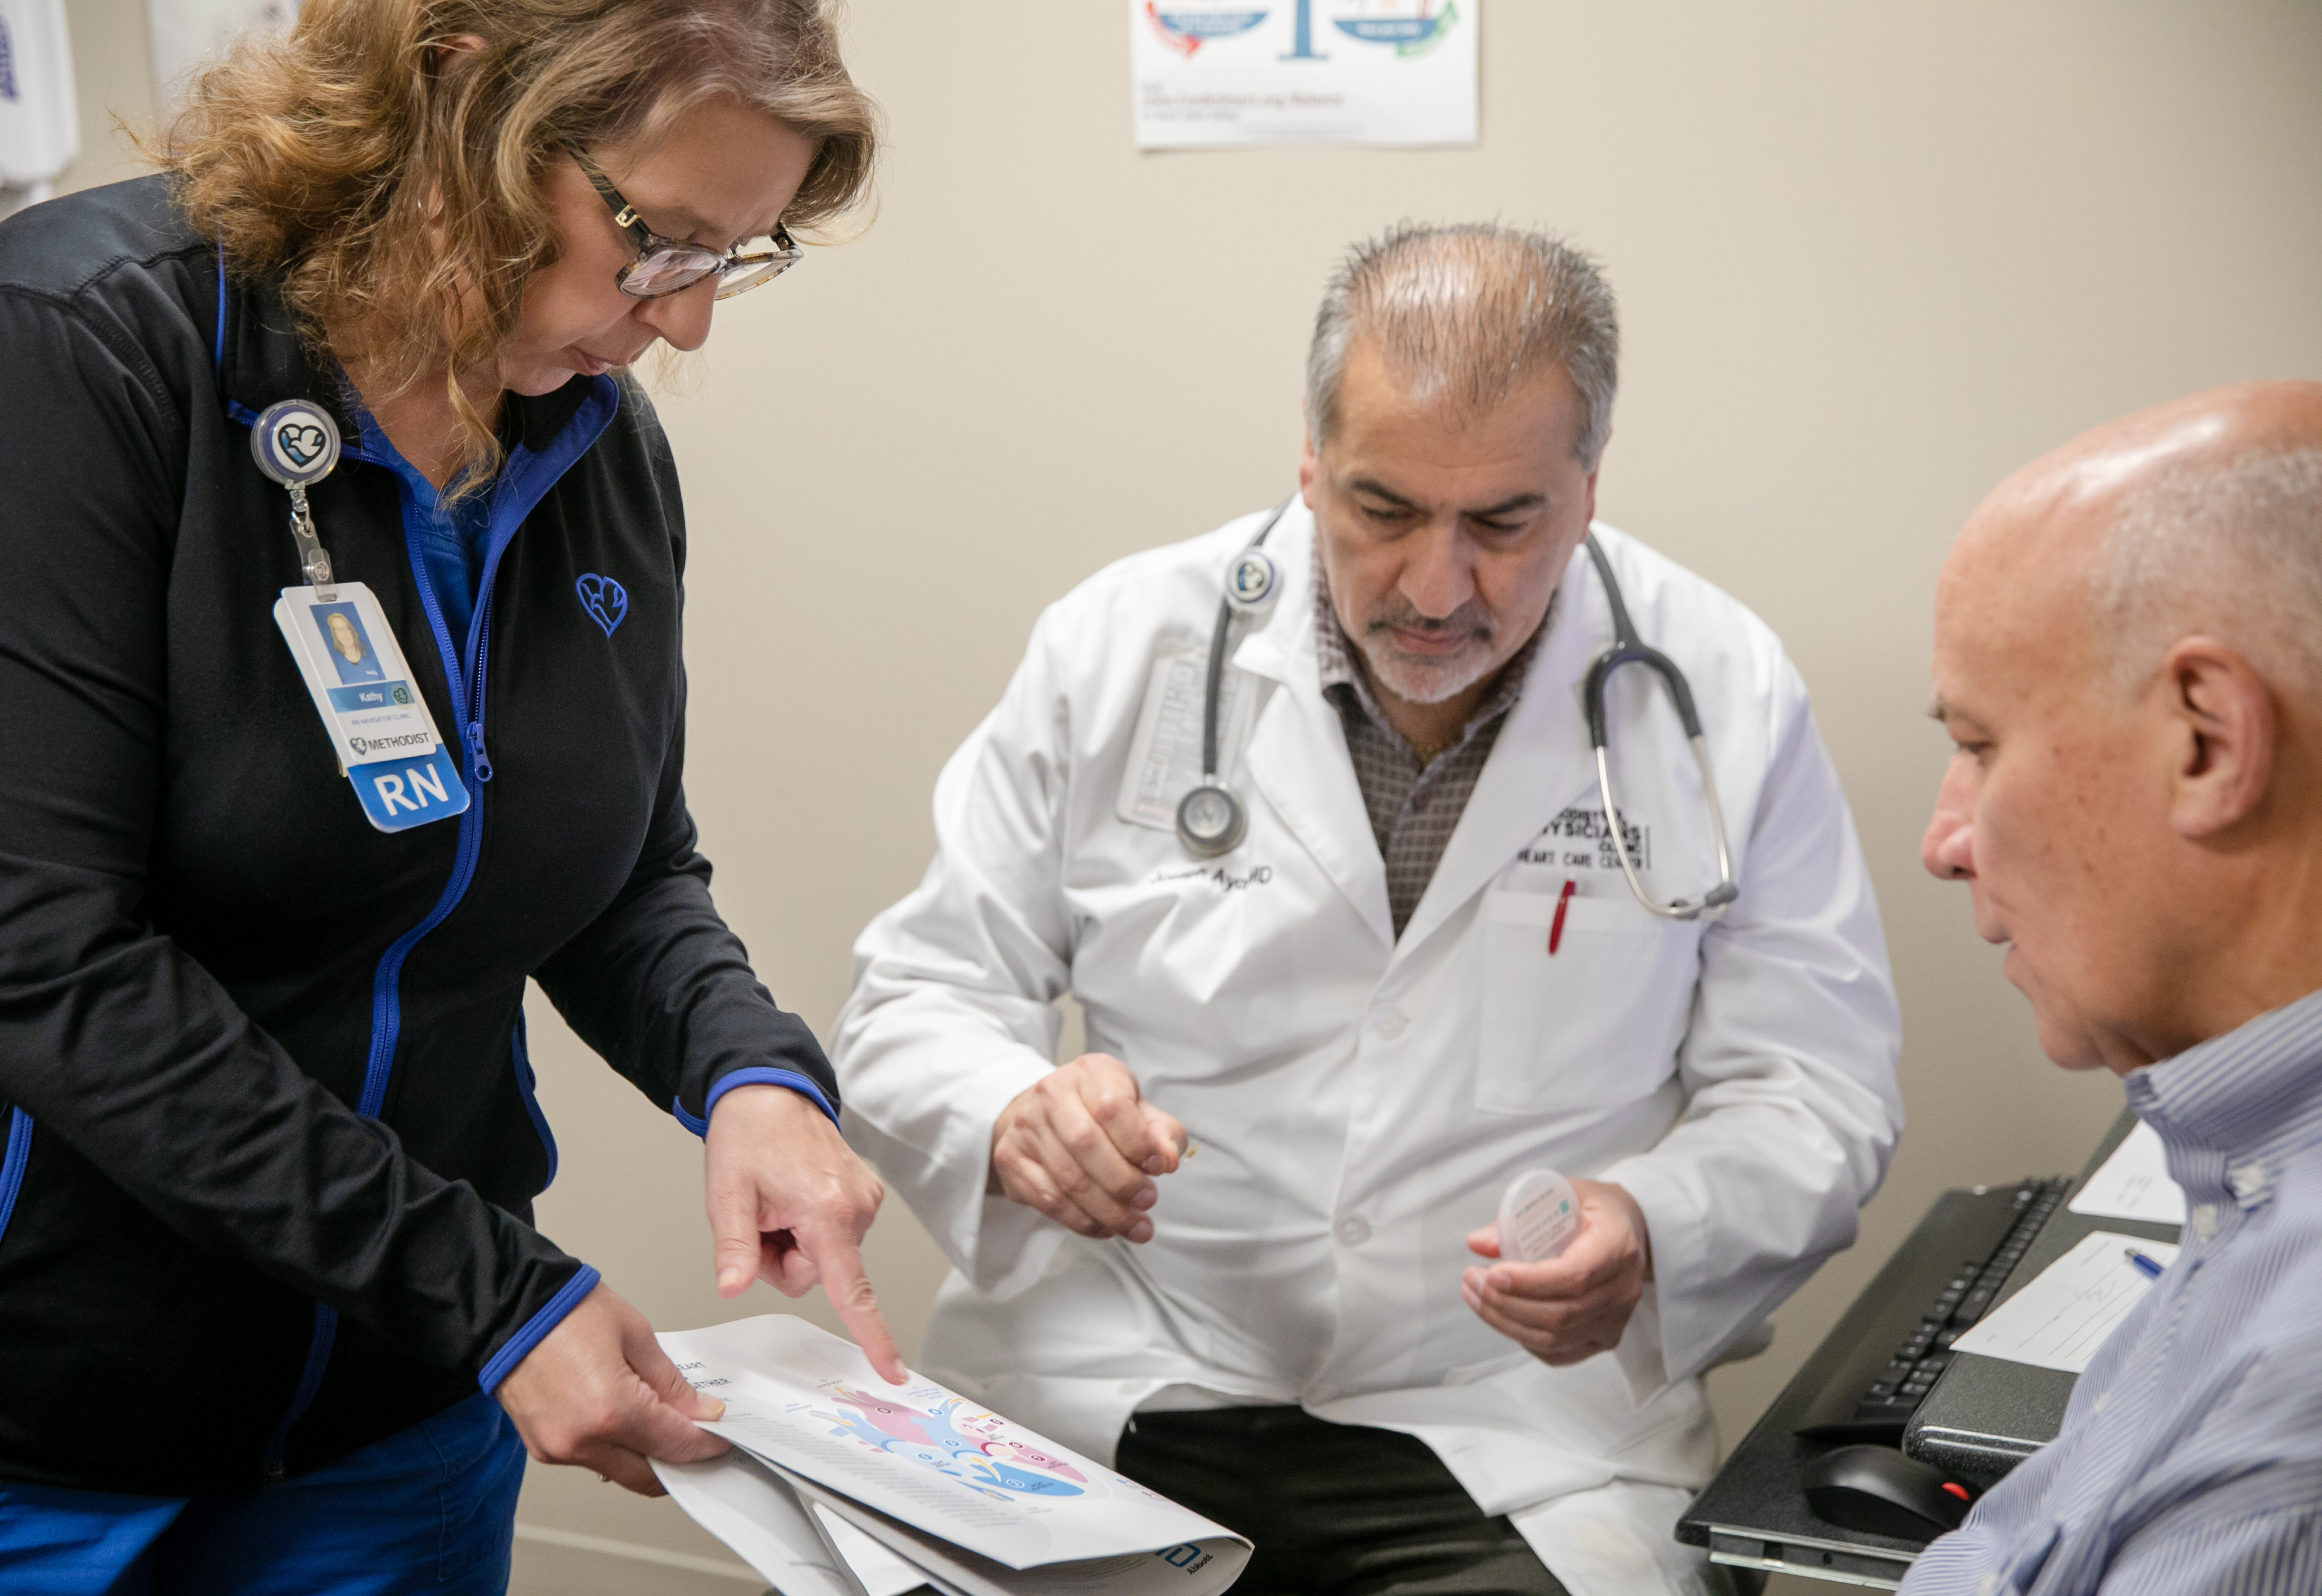 Kathy Sindelar, BSN, RN, and Joseph Ayoub, MD, meet with Tom Lowndes at a cardiology appointment